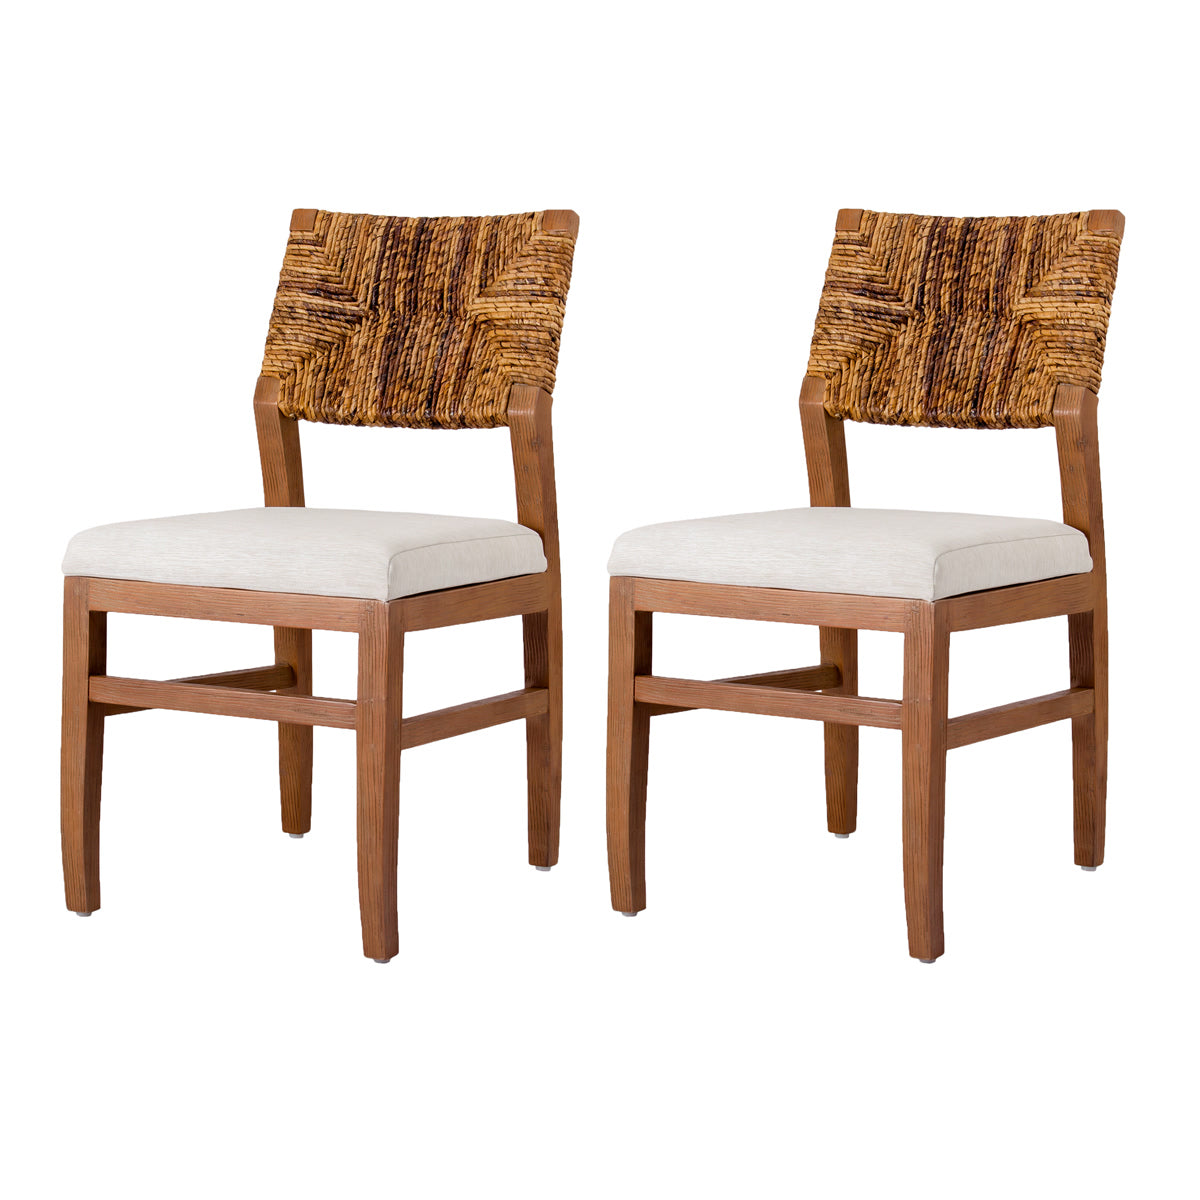 Lyon Abaca Dining Chair - Set of 2 by New Pacific Direct - 7400024